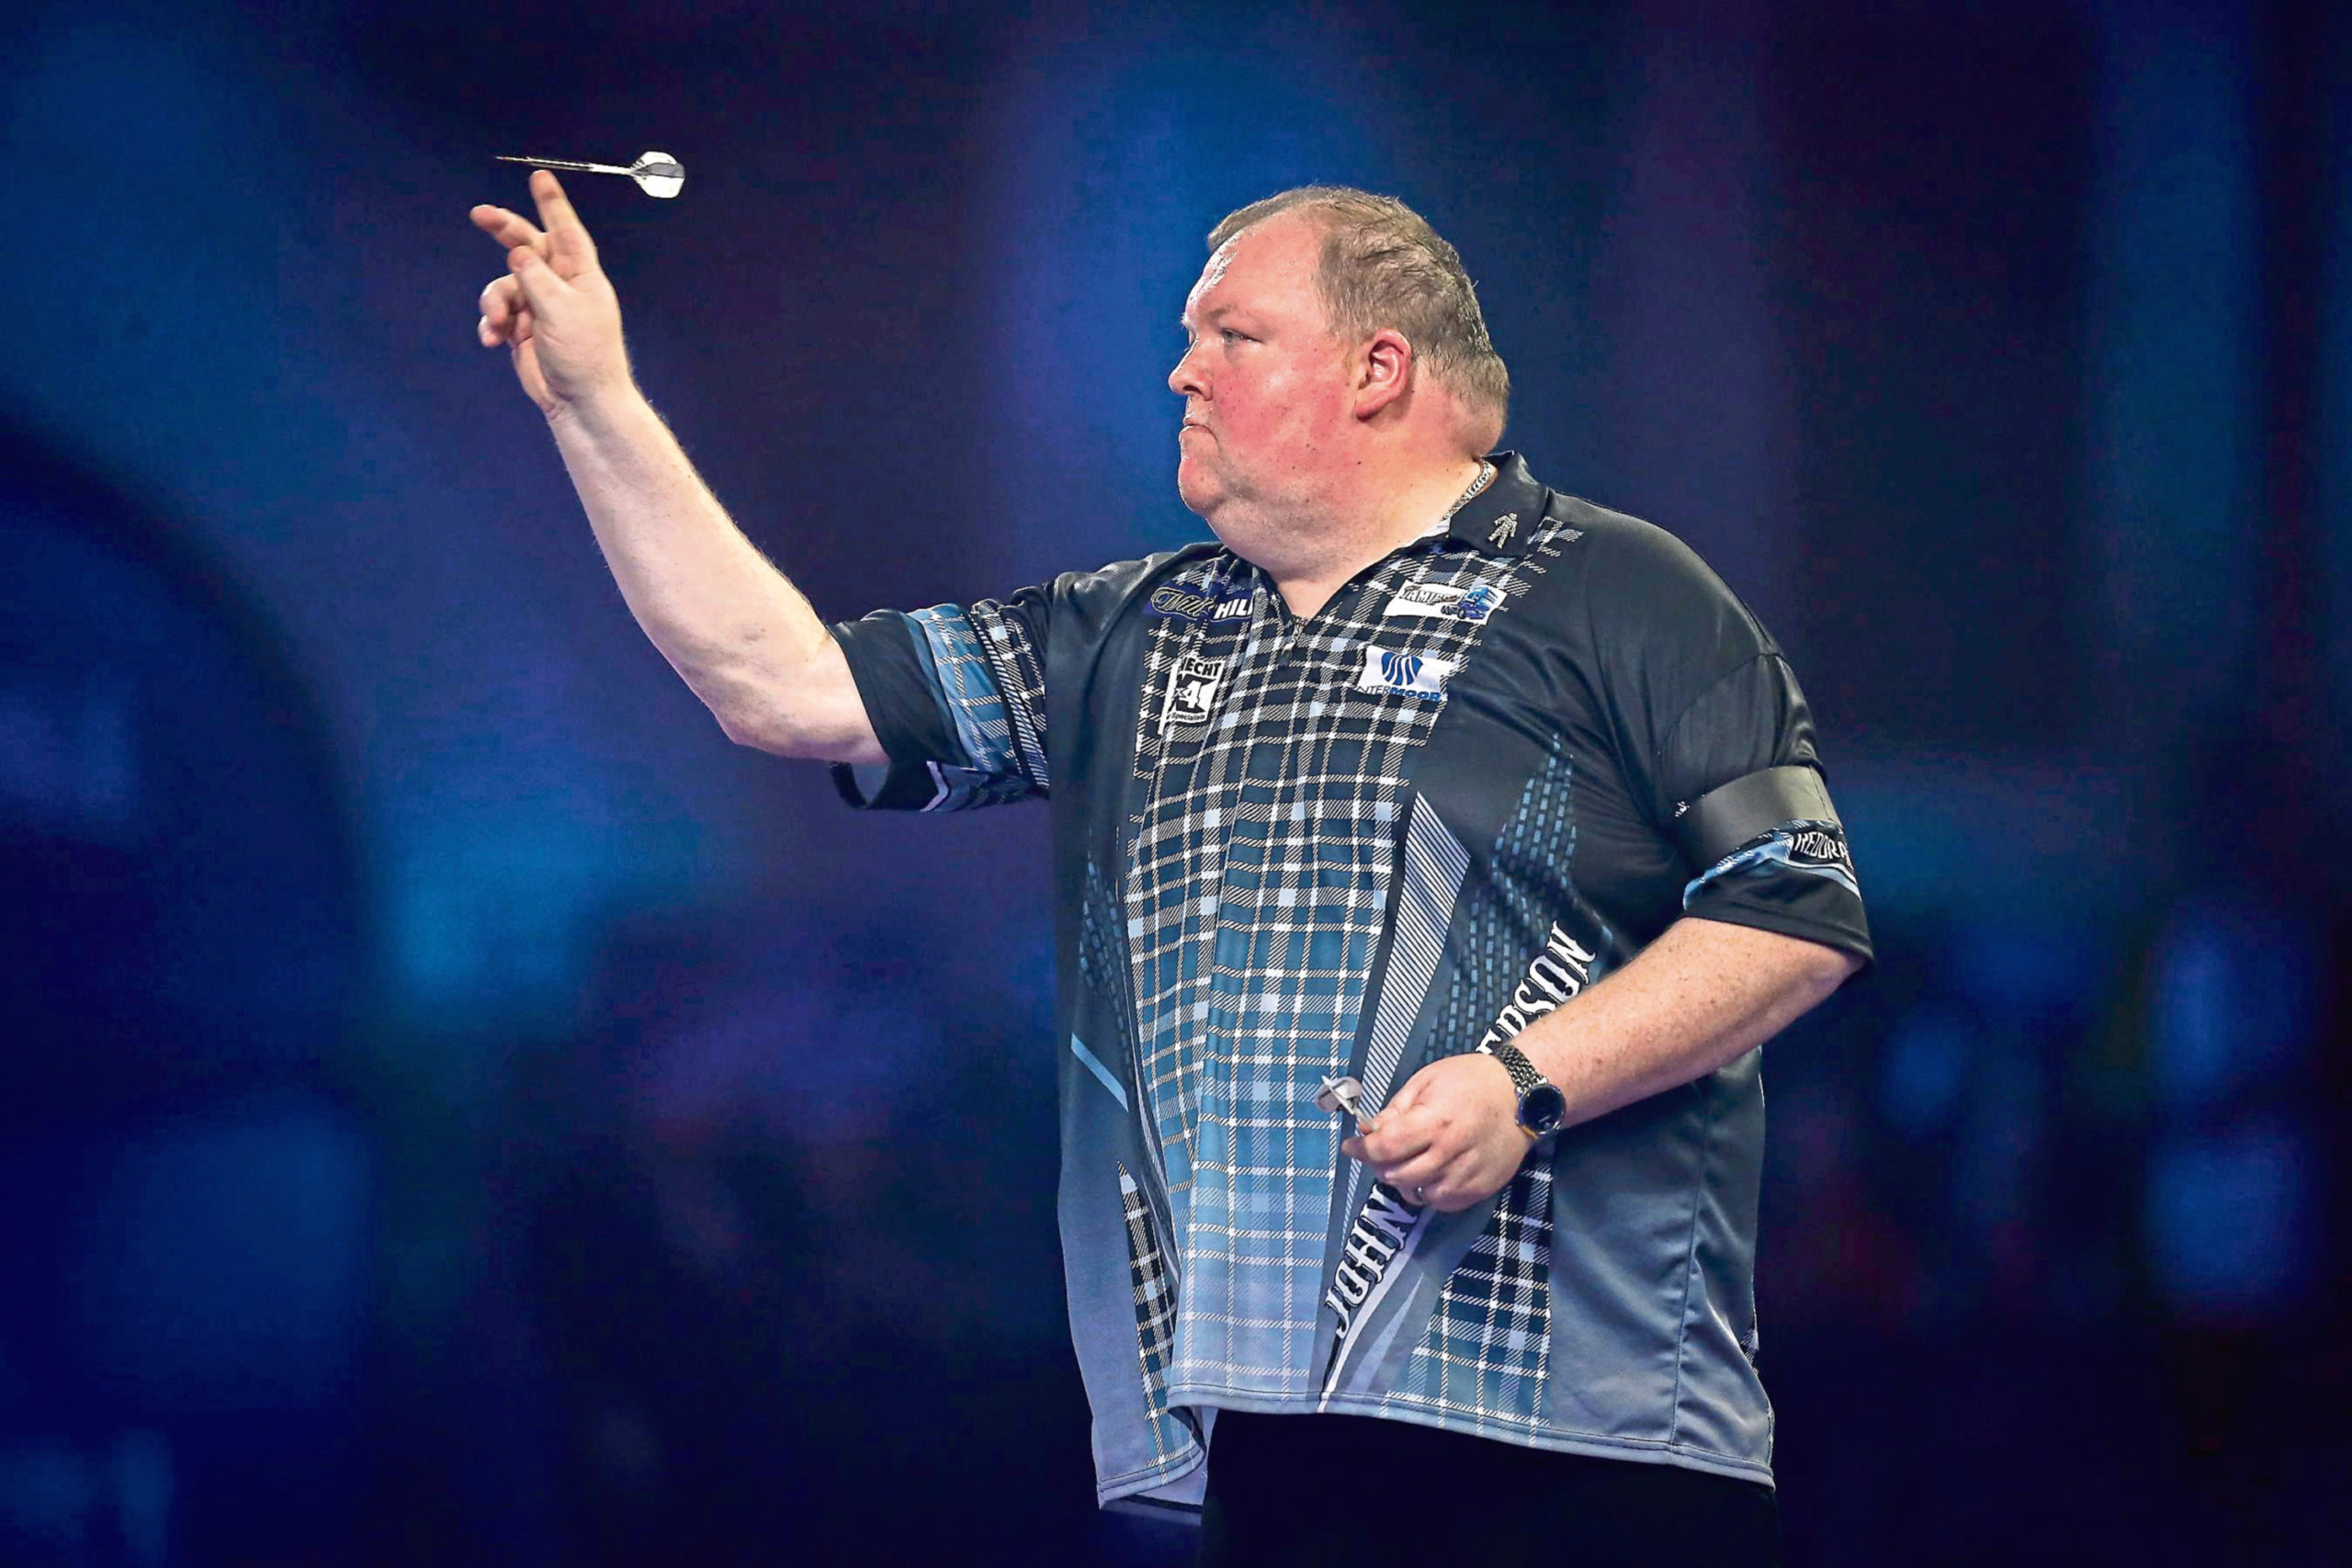 John Henderson has played in the PDC World Championship eight times, but never without fans